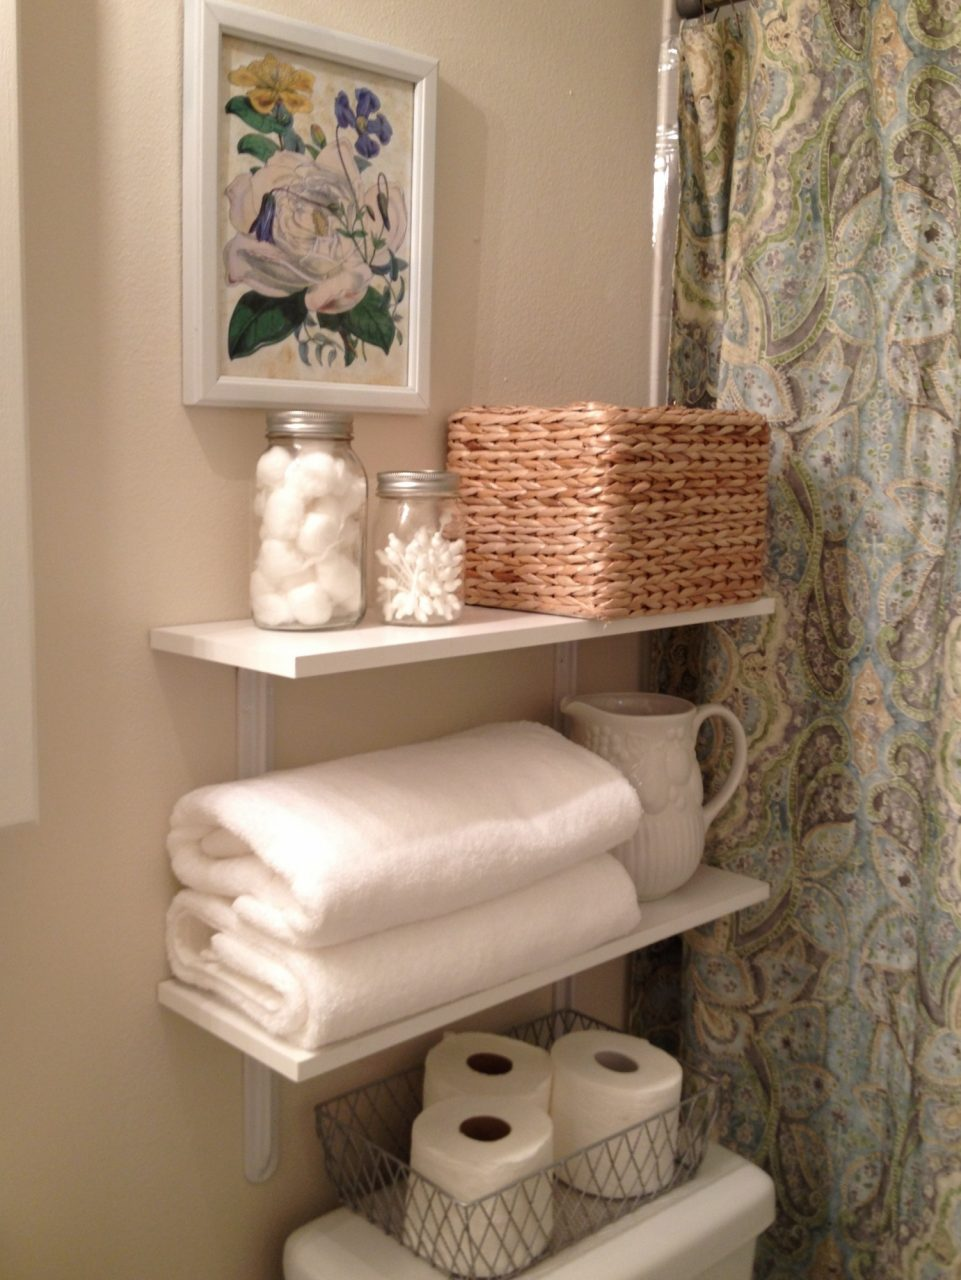 Lovable Homemade White Wooden Towel Storage Shelves For Simple